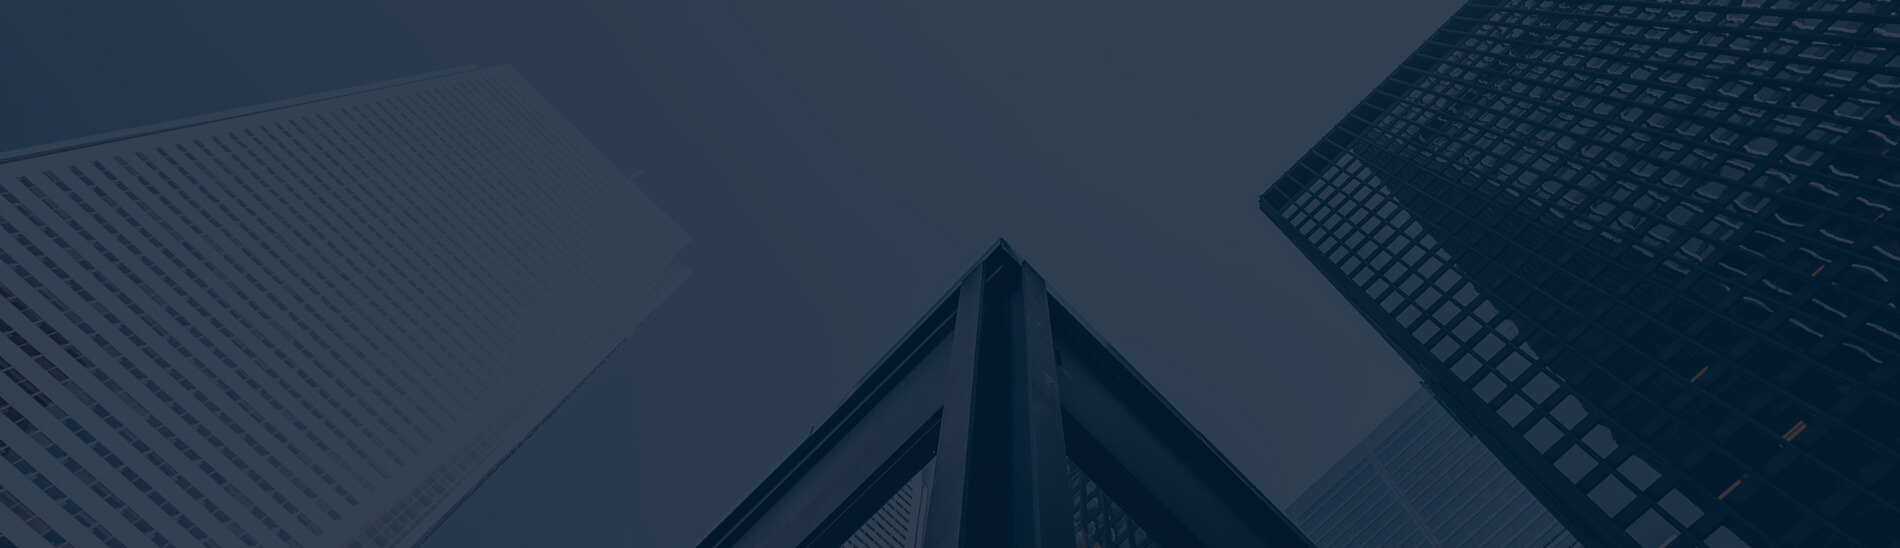 arthurmac mortgage investments banner